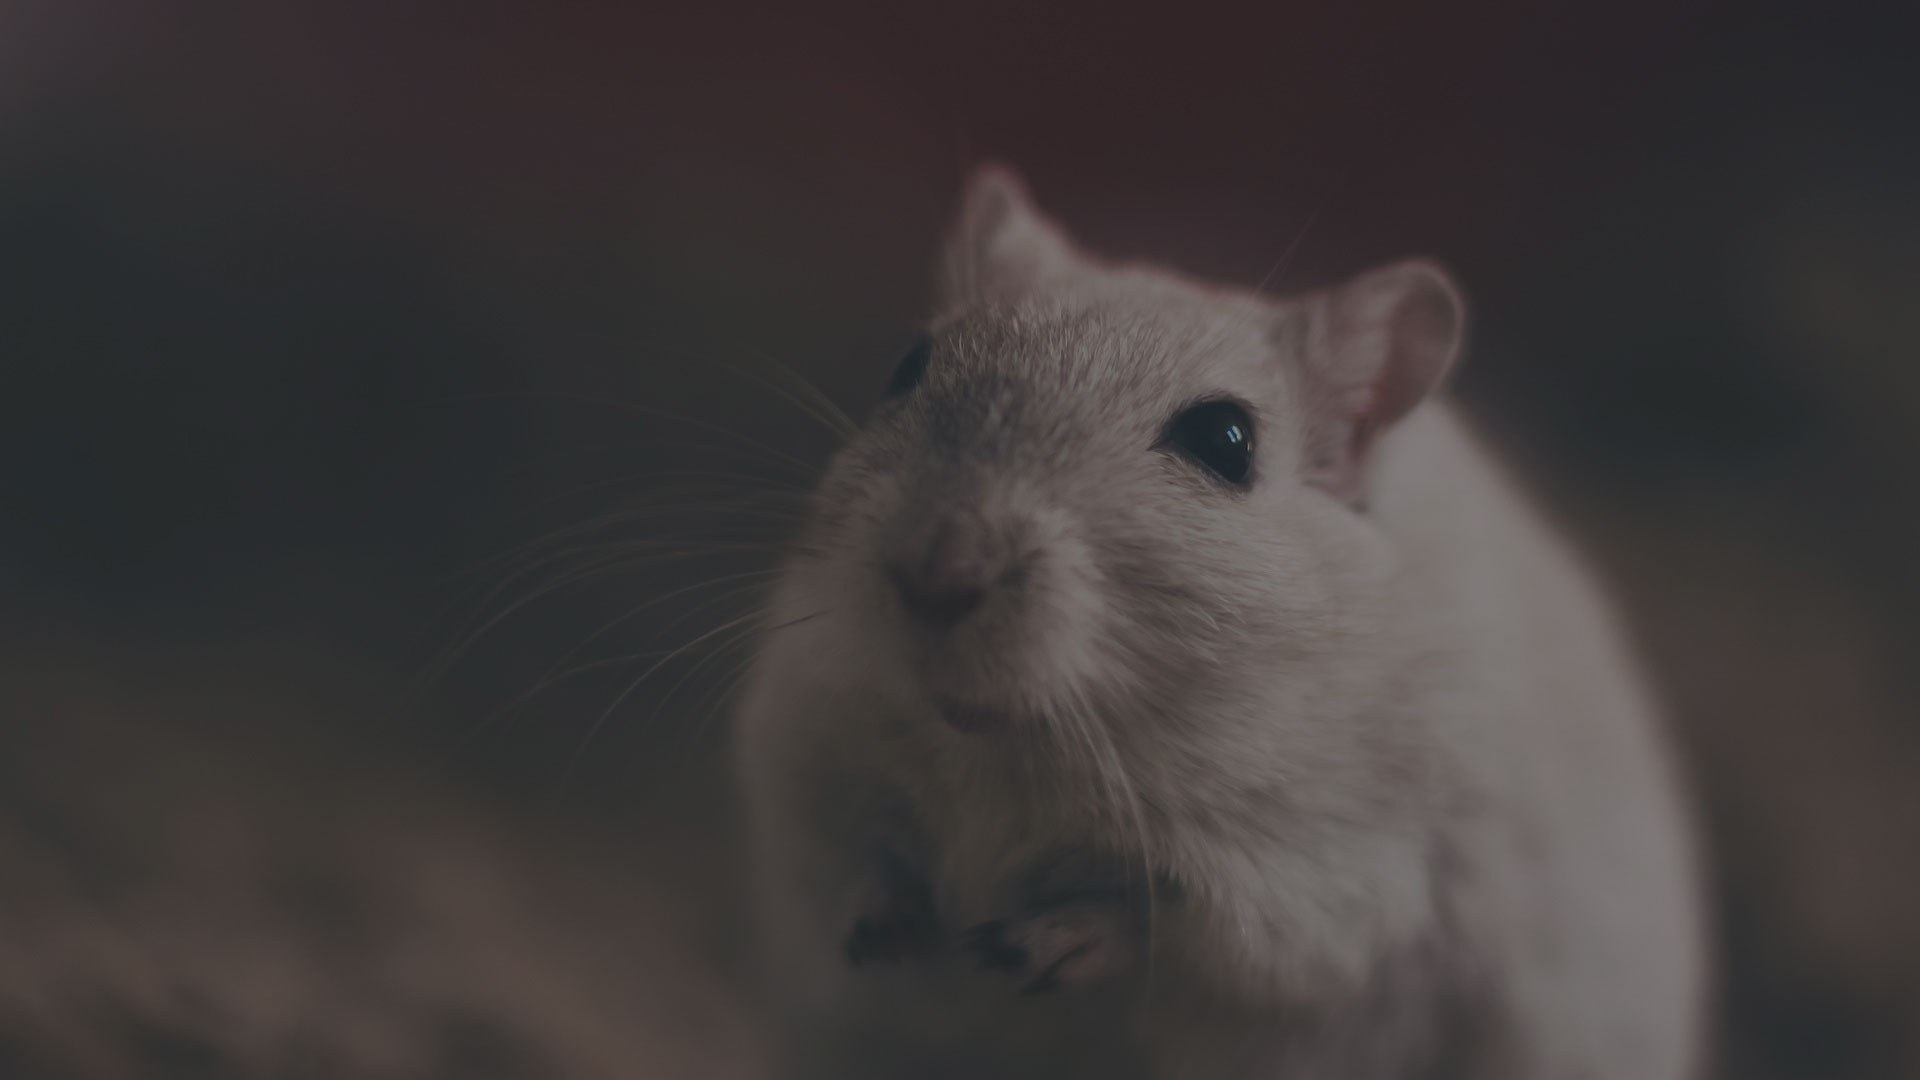 Adorable little pet mouse close up